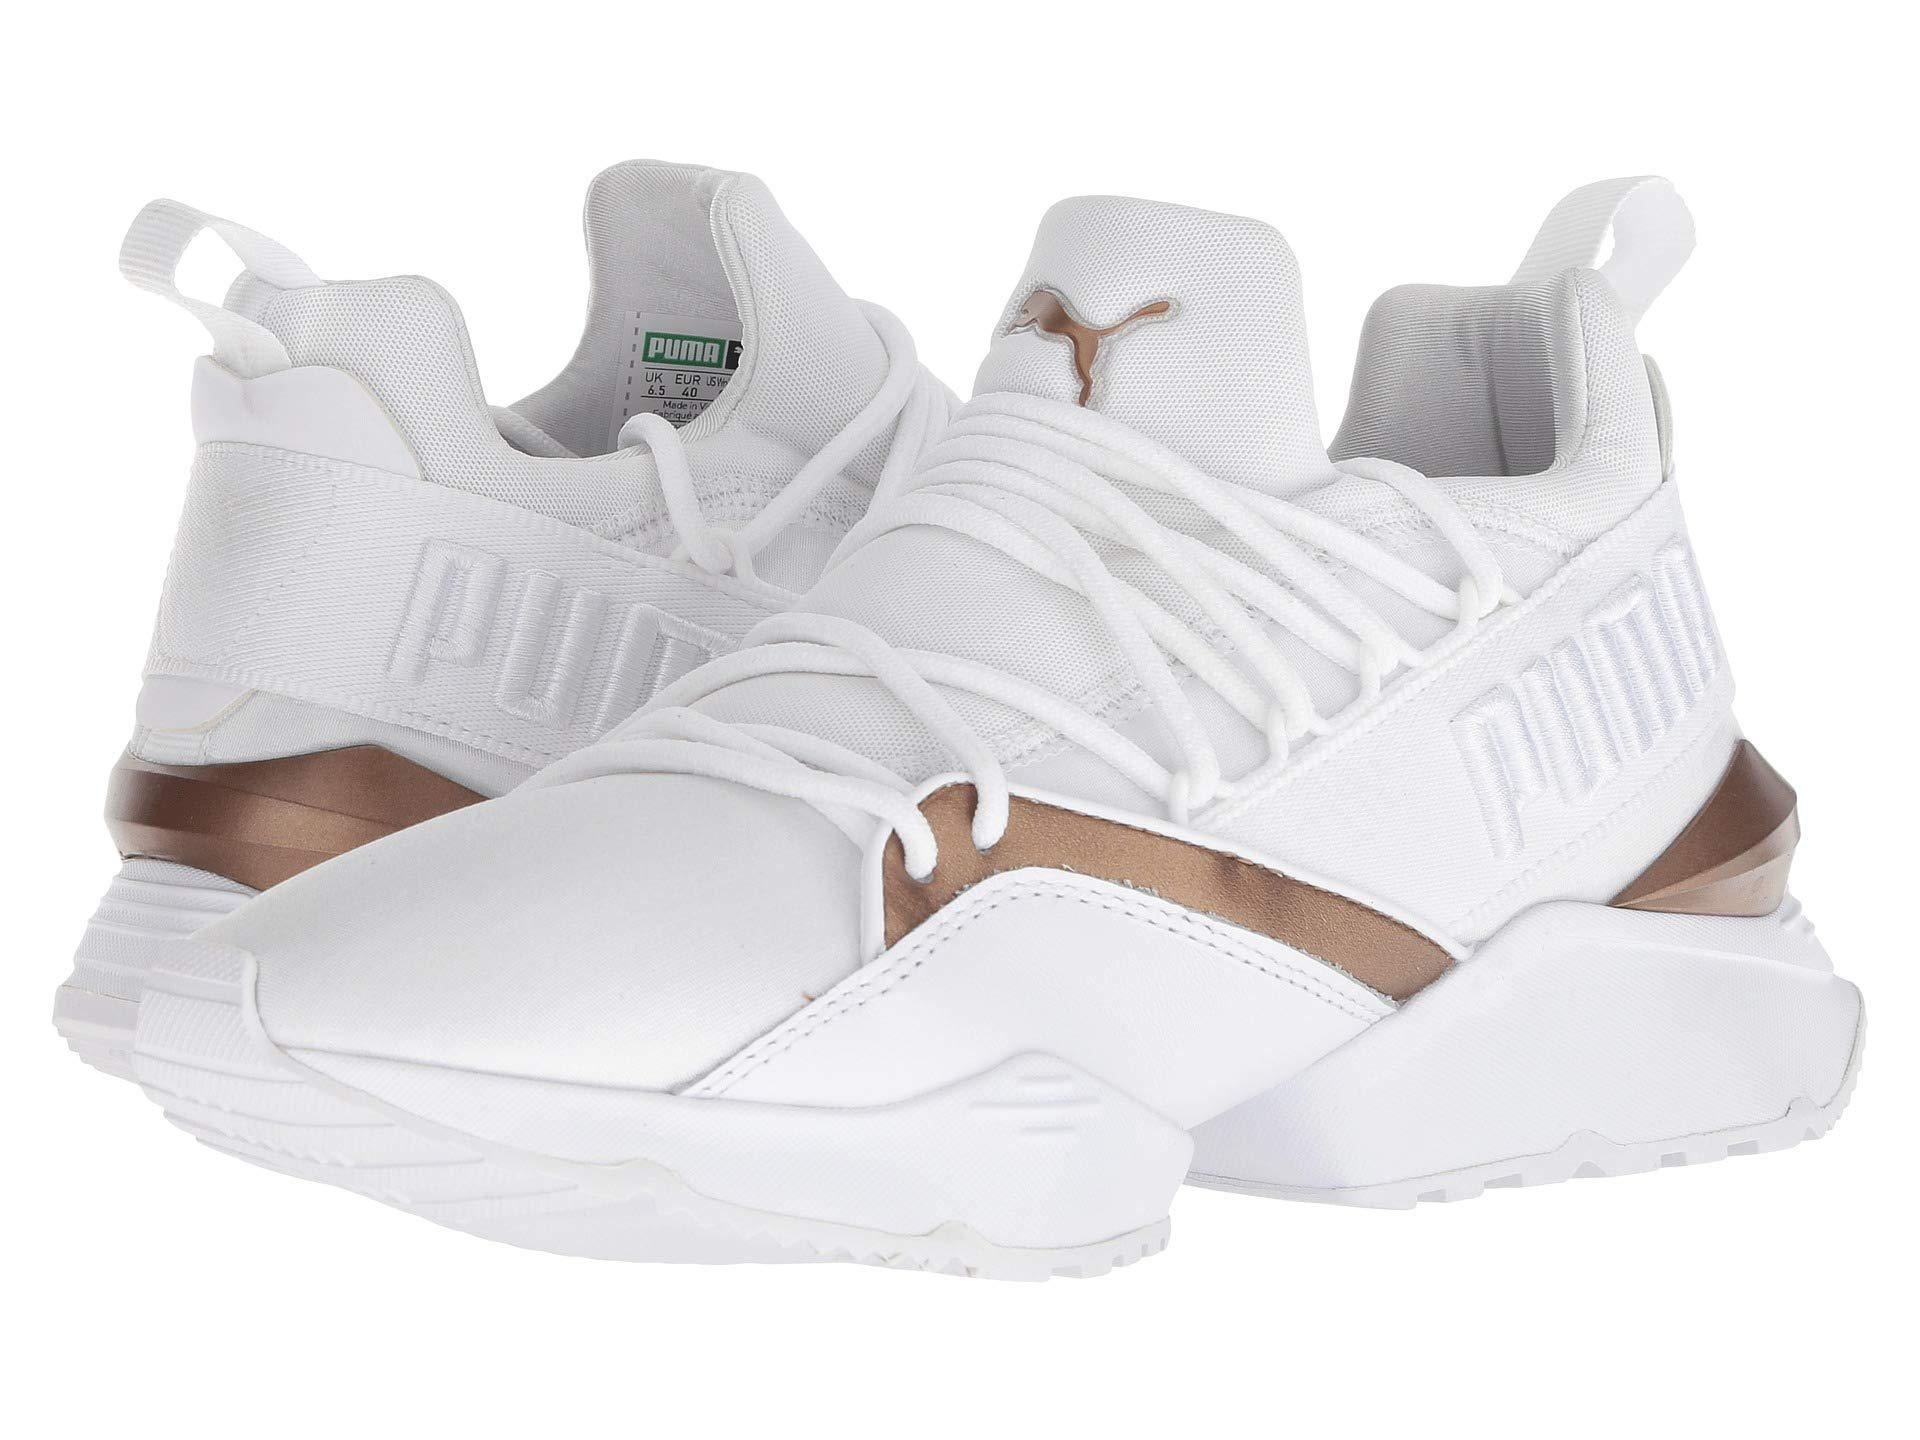 a41522385b8 PUMA - White Muse Maia Luxe ( Black  Black) Women s Lace Up Casual Shoes.  View fullscreen